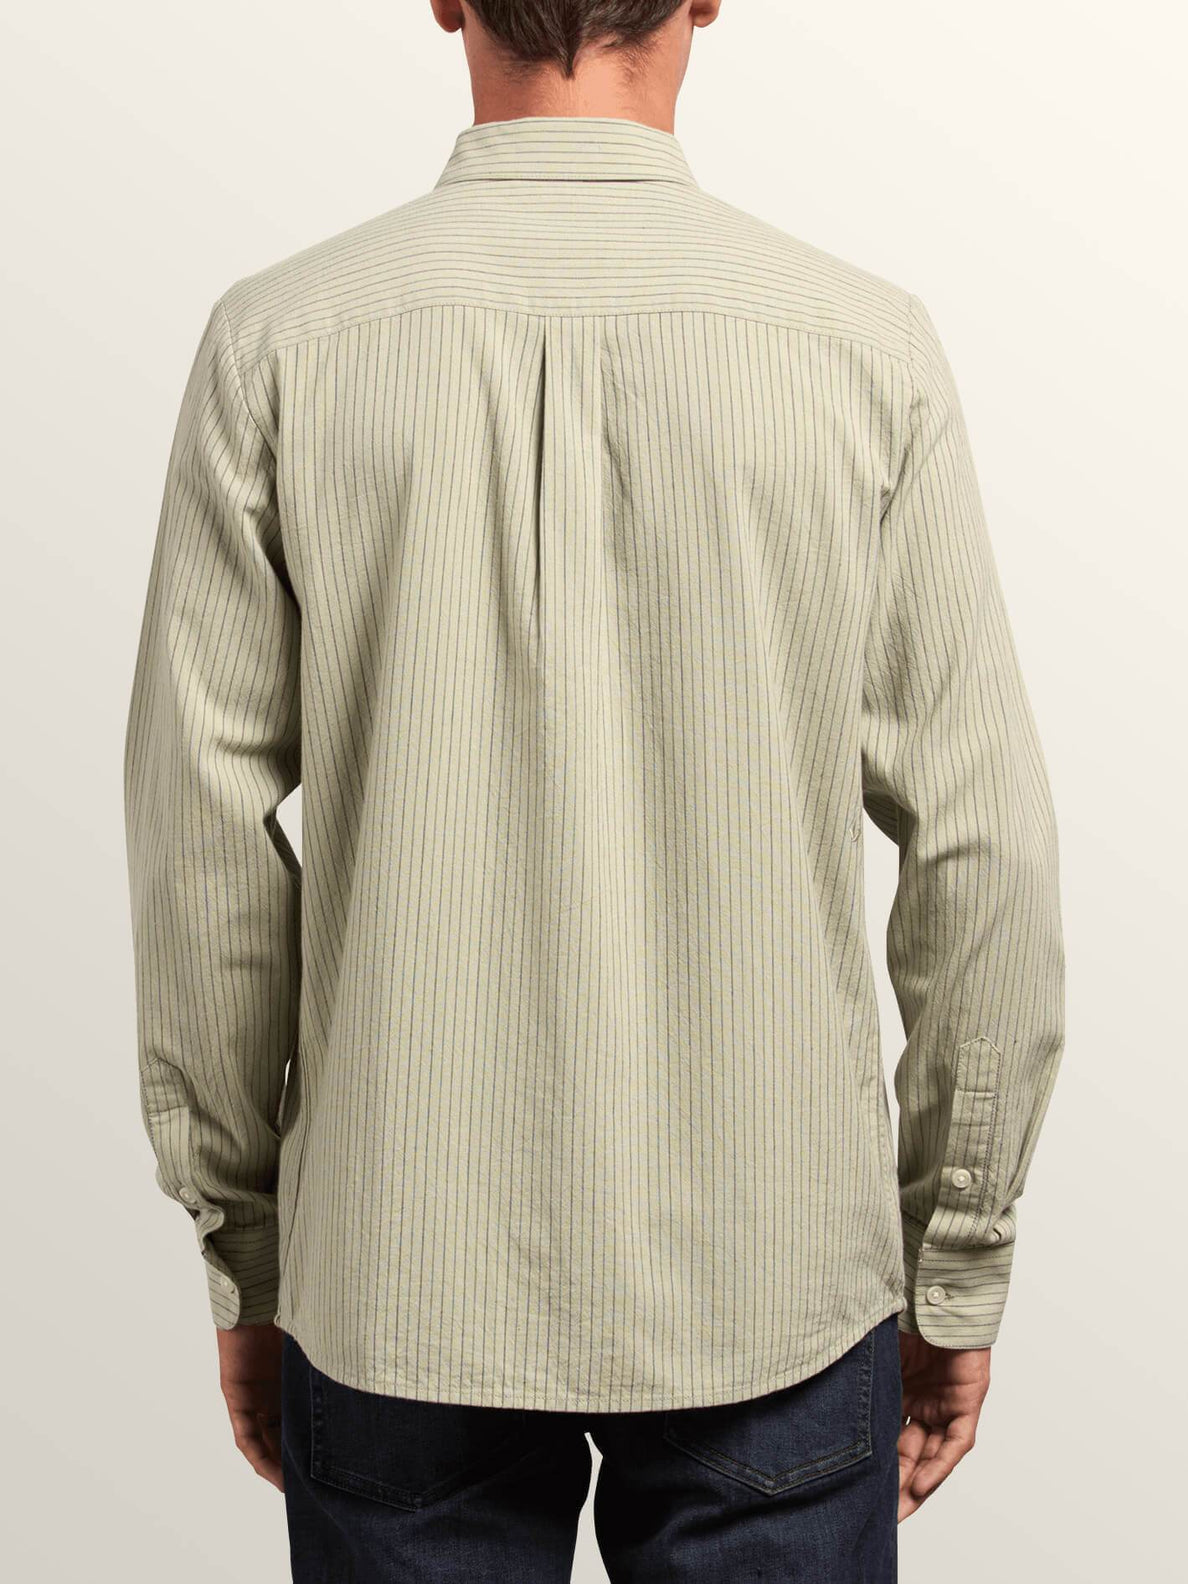 Volcom Mens Toner Modern Striped Long Sleeve Shirt